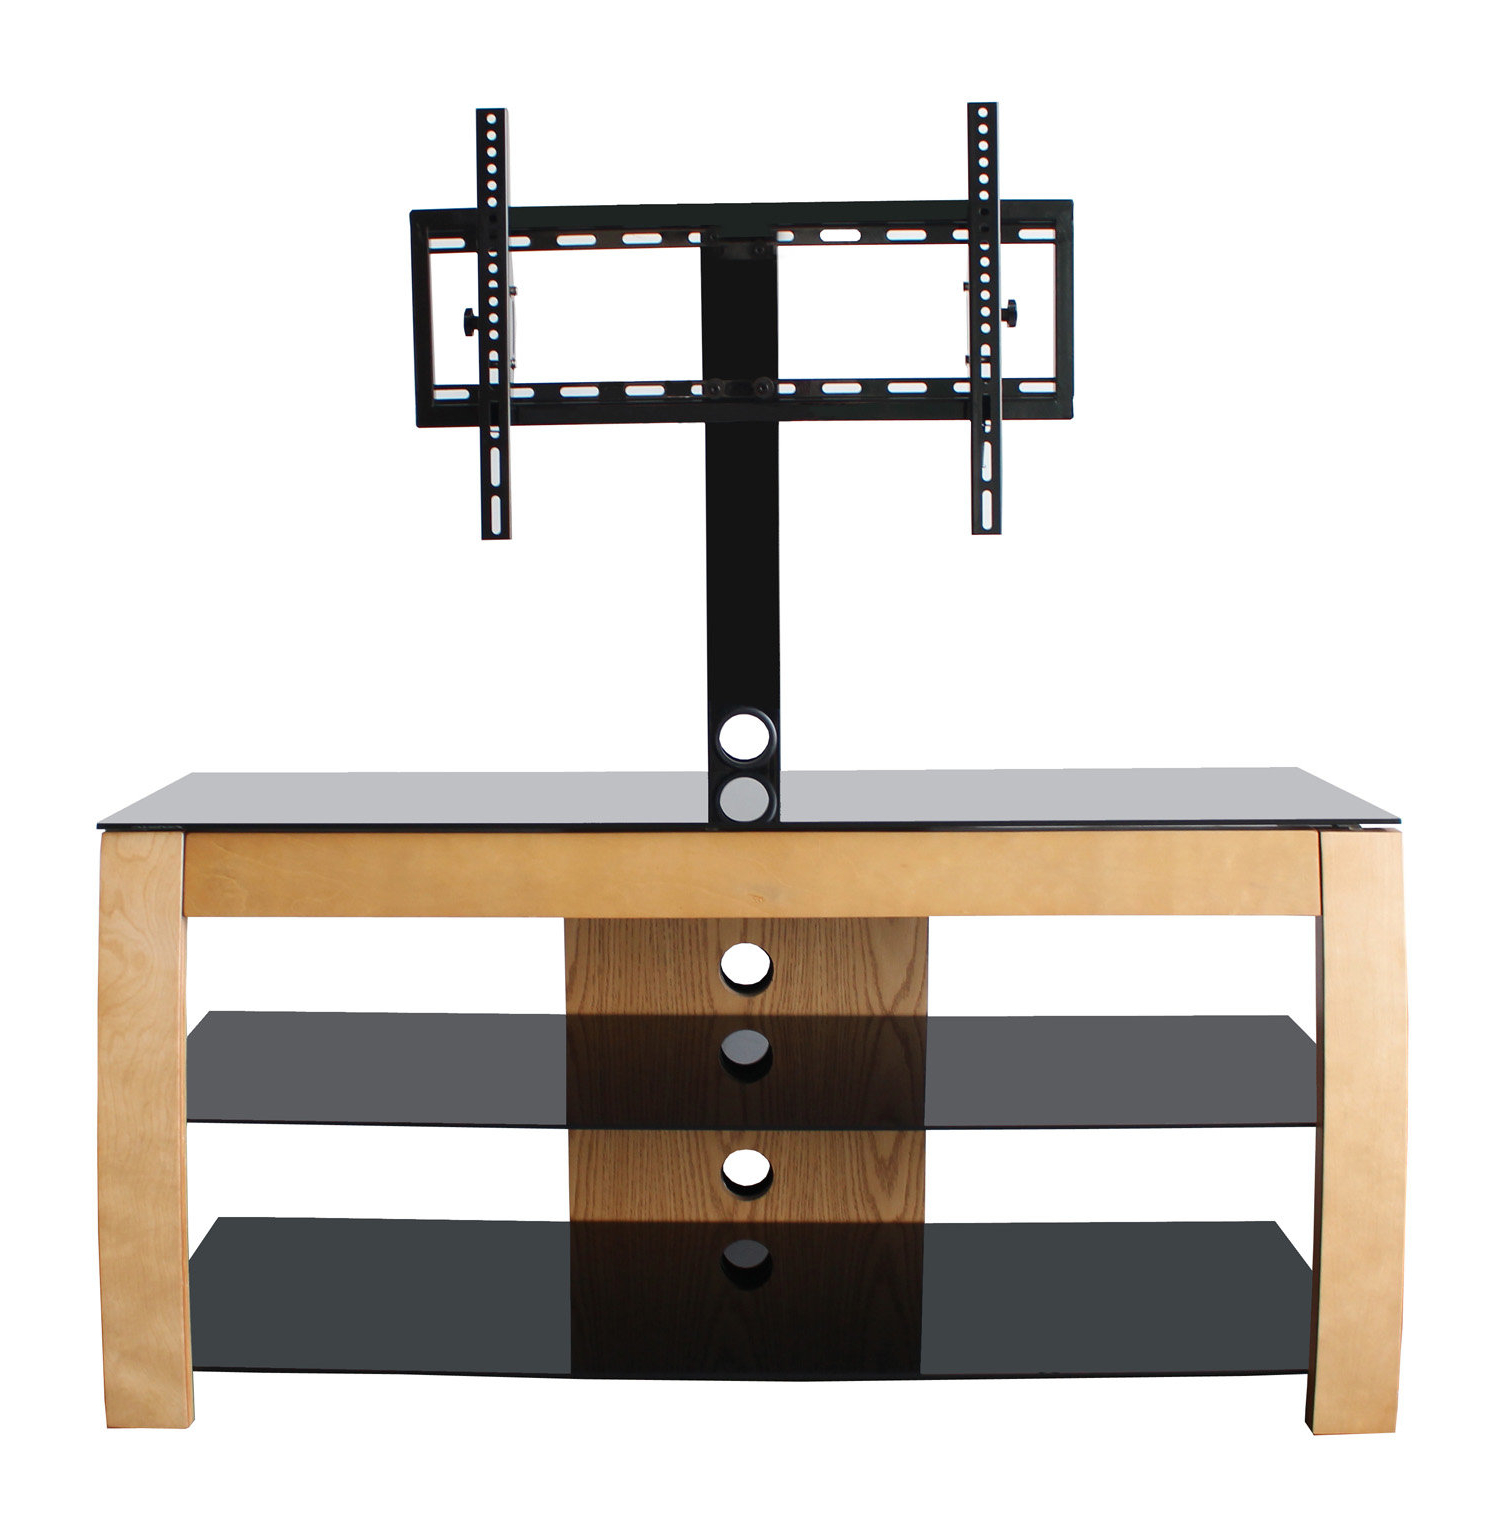 60 69 Inch Tv Stands You'll Love | Wayfair.ca For Lauderdale 62 Inch Tv Stands (Gallery 11 of 20)